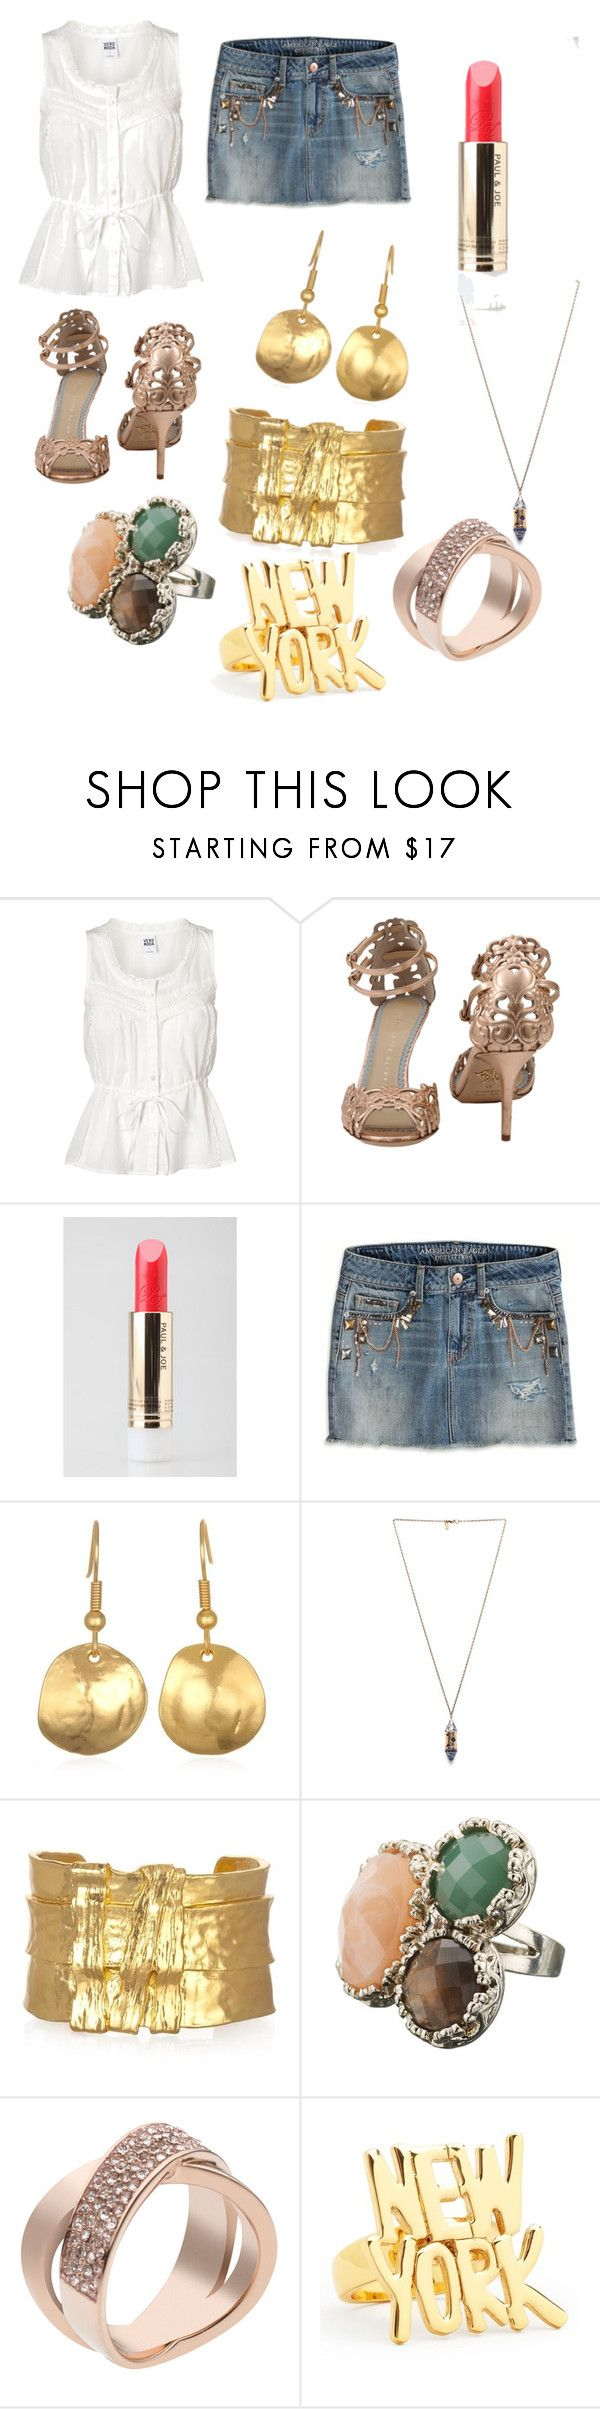 """""""Like totes flabarific!!"""" by lollipopwhiskers on Polyvore featuring Vero Moda, Charlotte Olympia, Paul & Joe, American Eagle Outfitters, Pamela Love, Monsoon, Michael Kors and Kate Spade"""